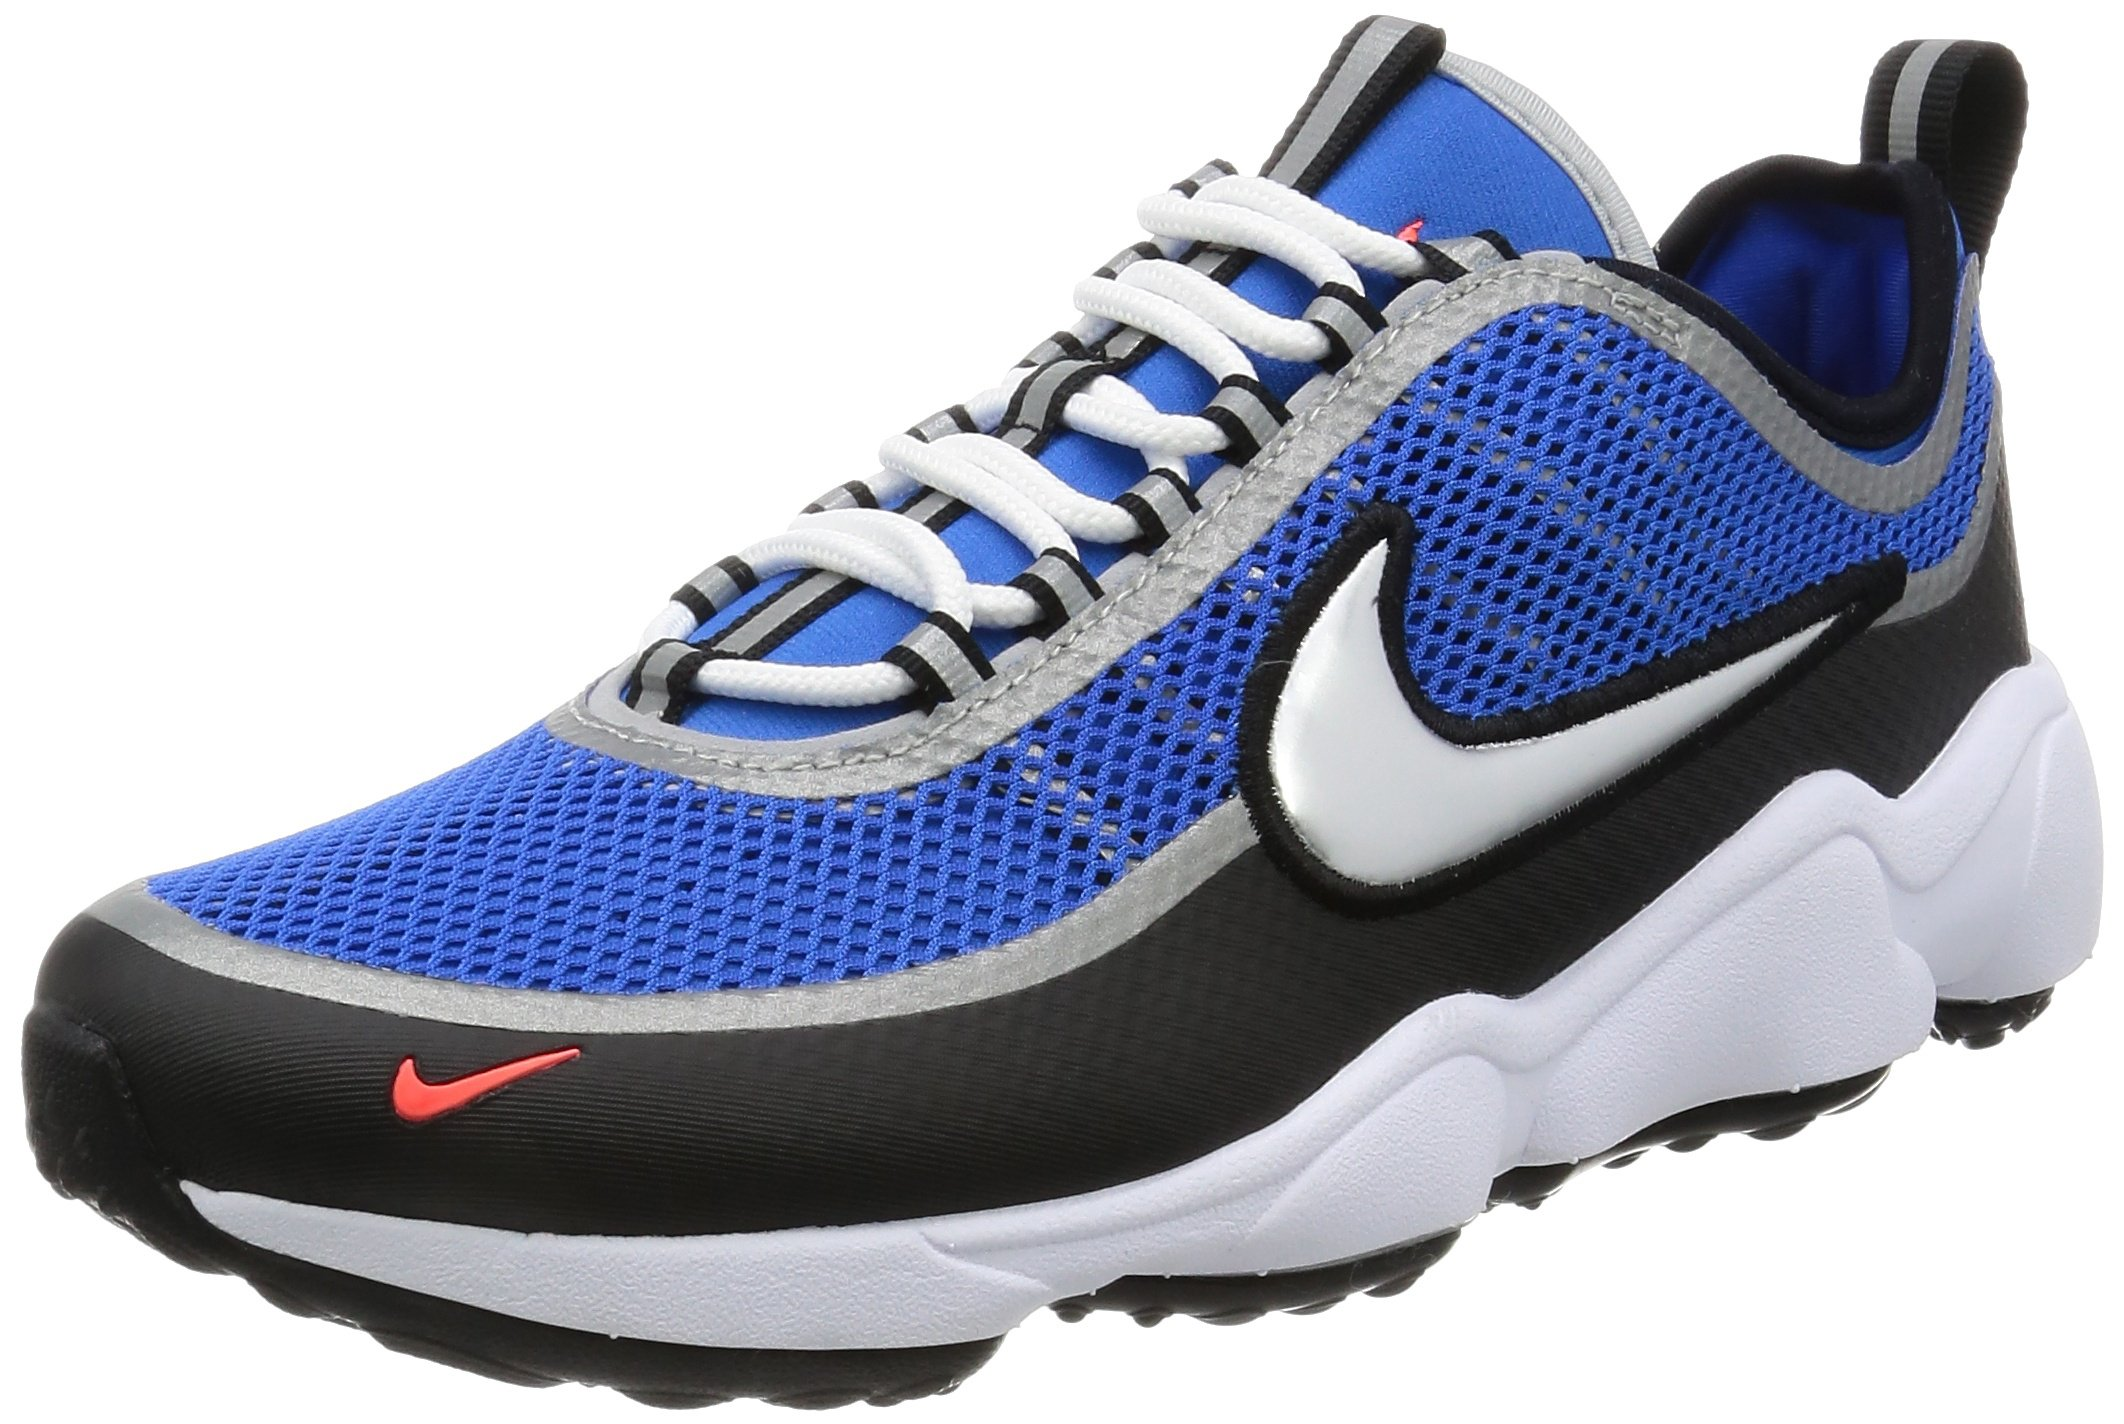 Nike Zoom Spiridon Ultra Men's Shoes SPRDN Regal BlueBlackCrimsonMetallic Silver 876267 400 (9 D(M) US)